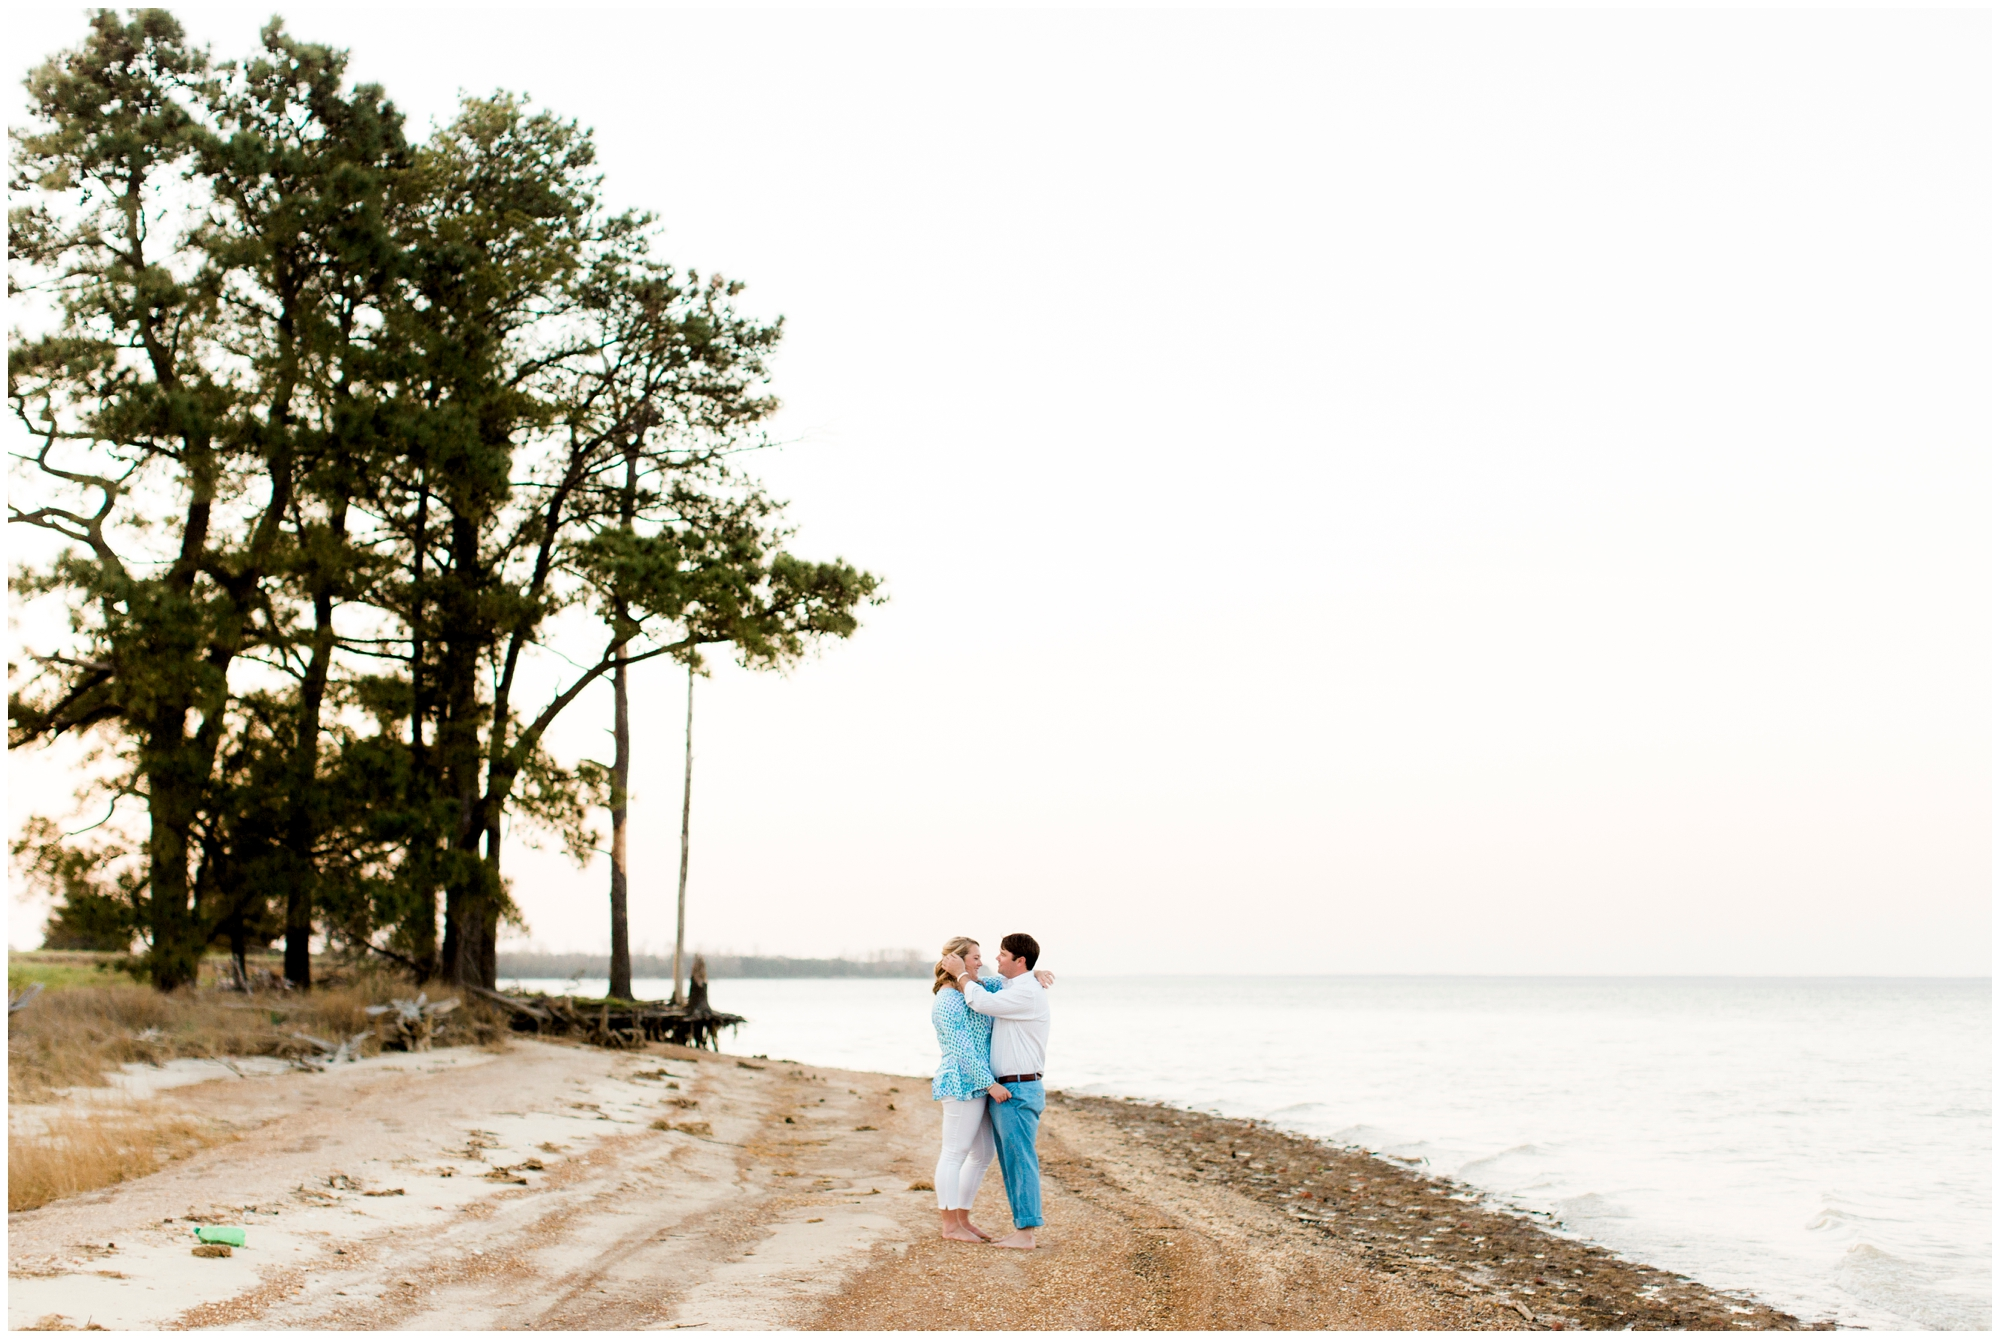 Rachel-Robert-Urbanna-Virginia-Spring-Engagement-Photos_0013.jpg